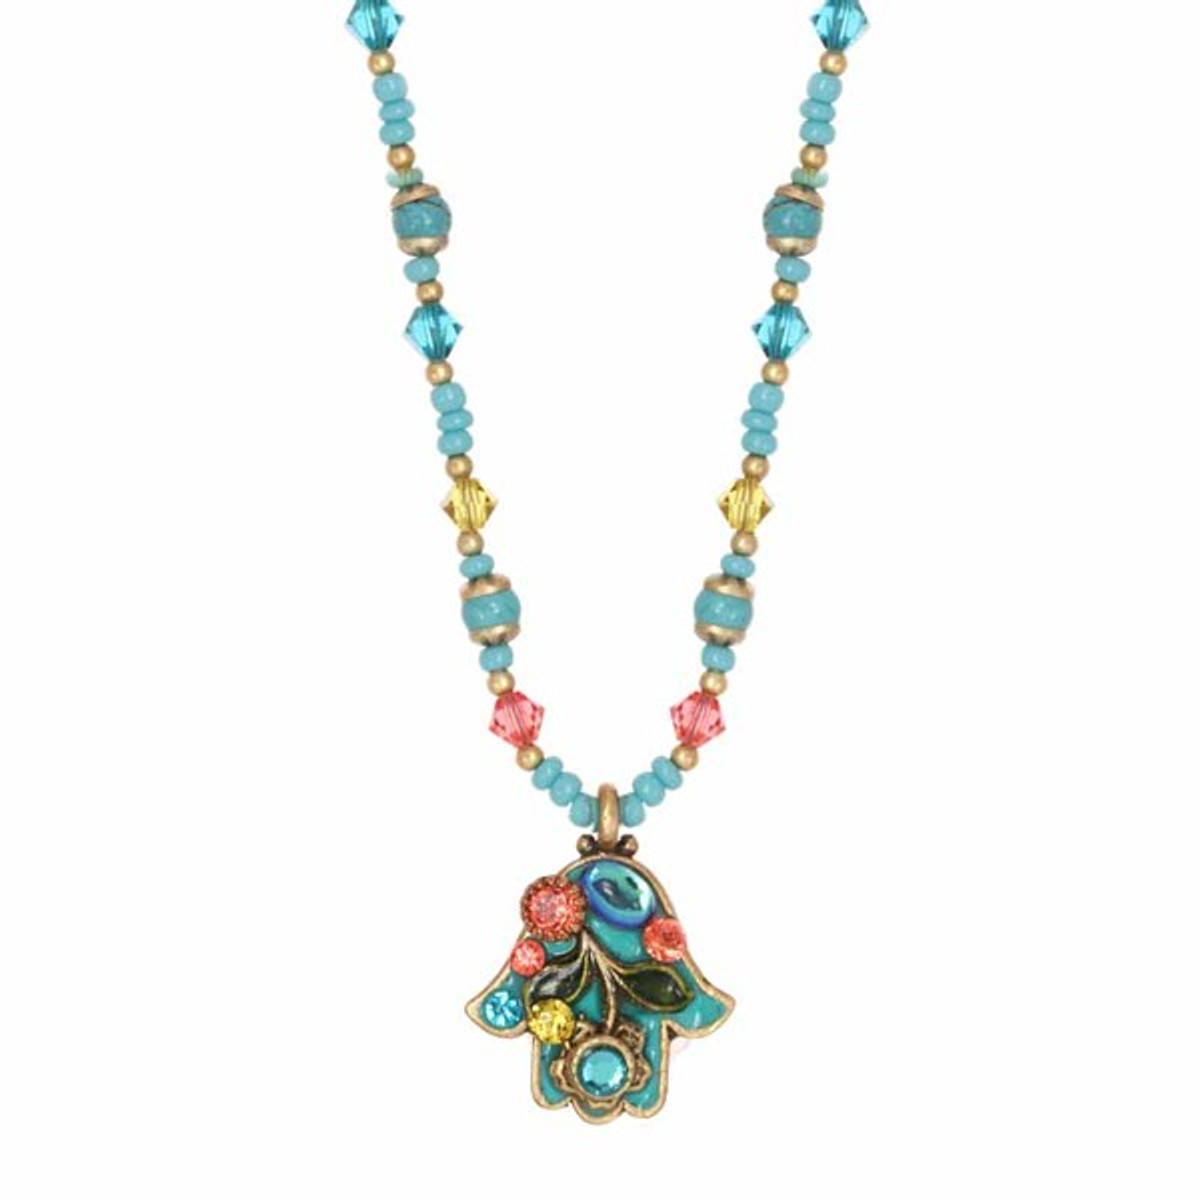 Small Teal And Pink Floral Hamsa